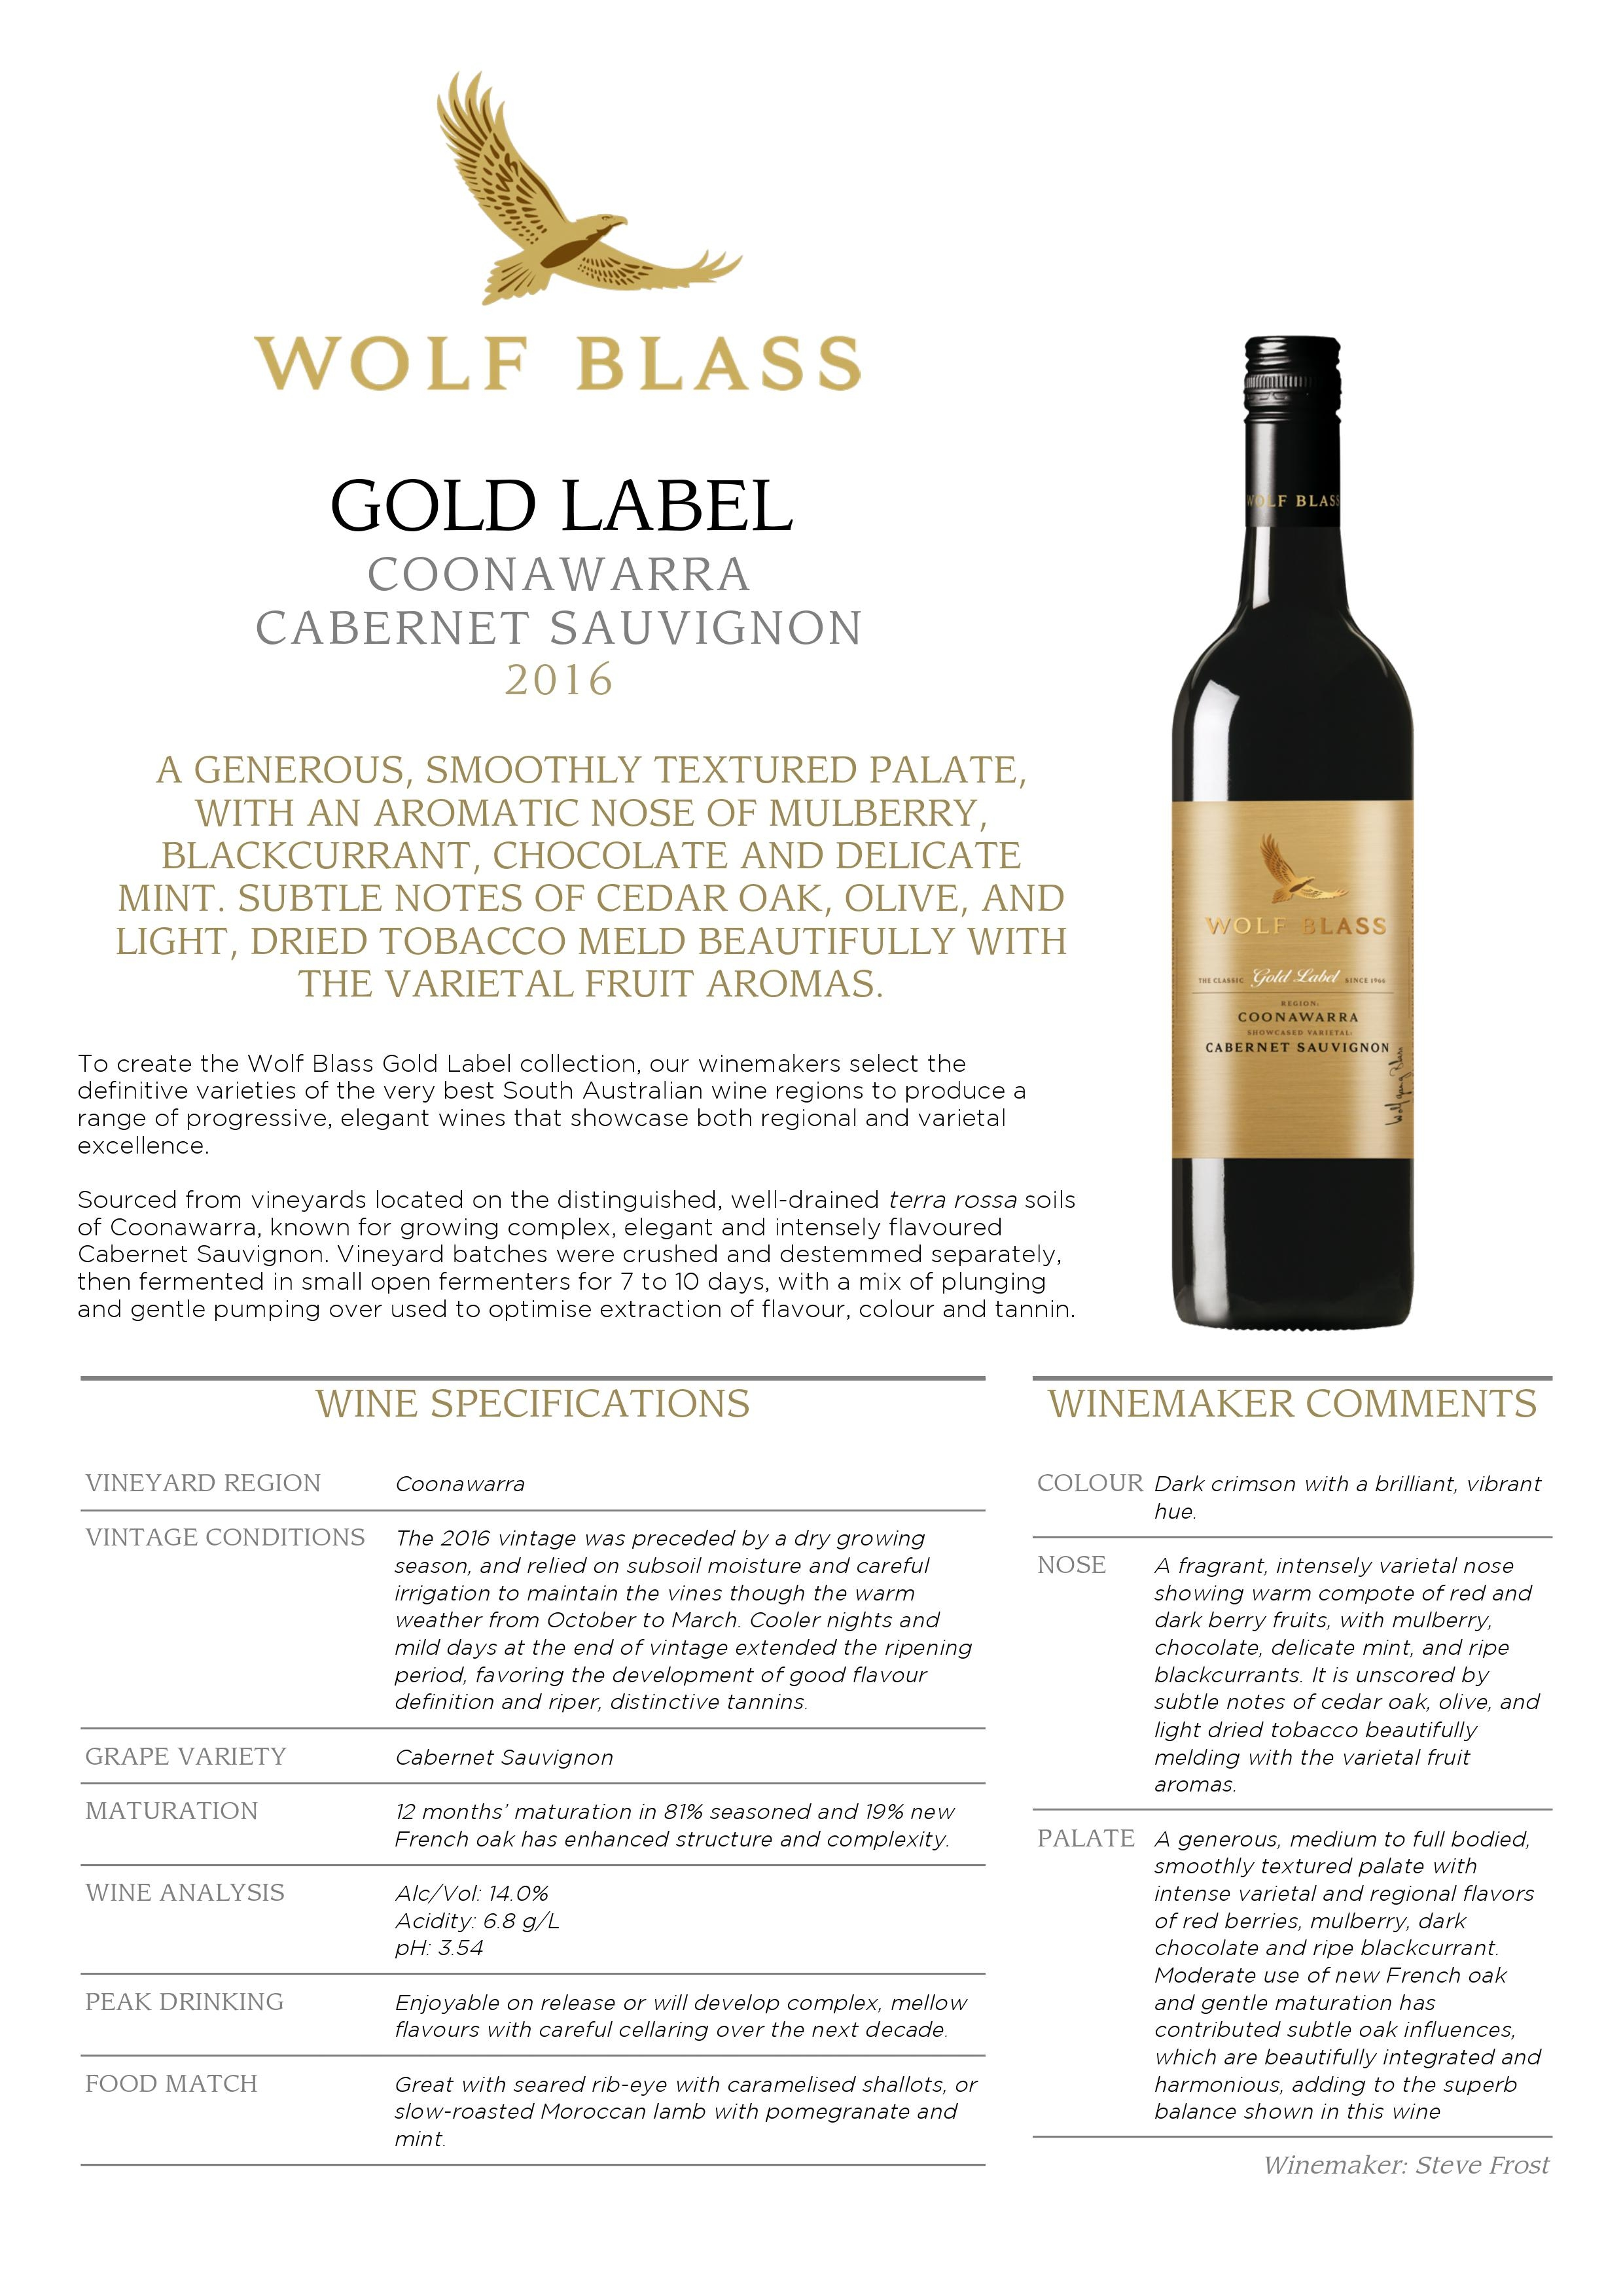 GOLD LABEL COONAWARRA CABERNET SAUVIGNON 2016 A GENEROUS, SMOOTHLY TEXTURED PALATE, WITH AN AROMATIC NOSE OF MULBERRY, BLACKCURRANT, CHOCOLATE AND DELICATE MINT. SUBTLE NOTES OF CEDAR OAK, OLIV</div> </div> 						</div> 											                         <div class=